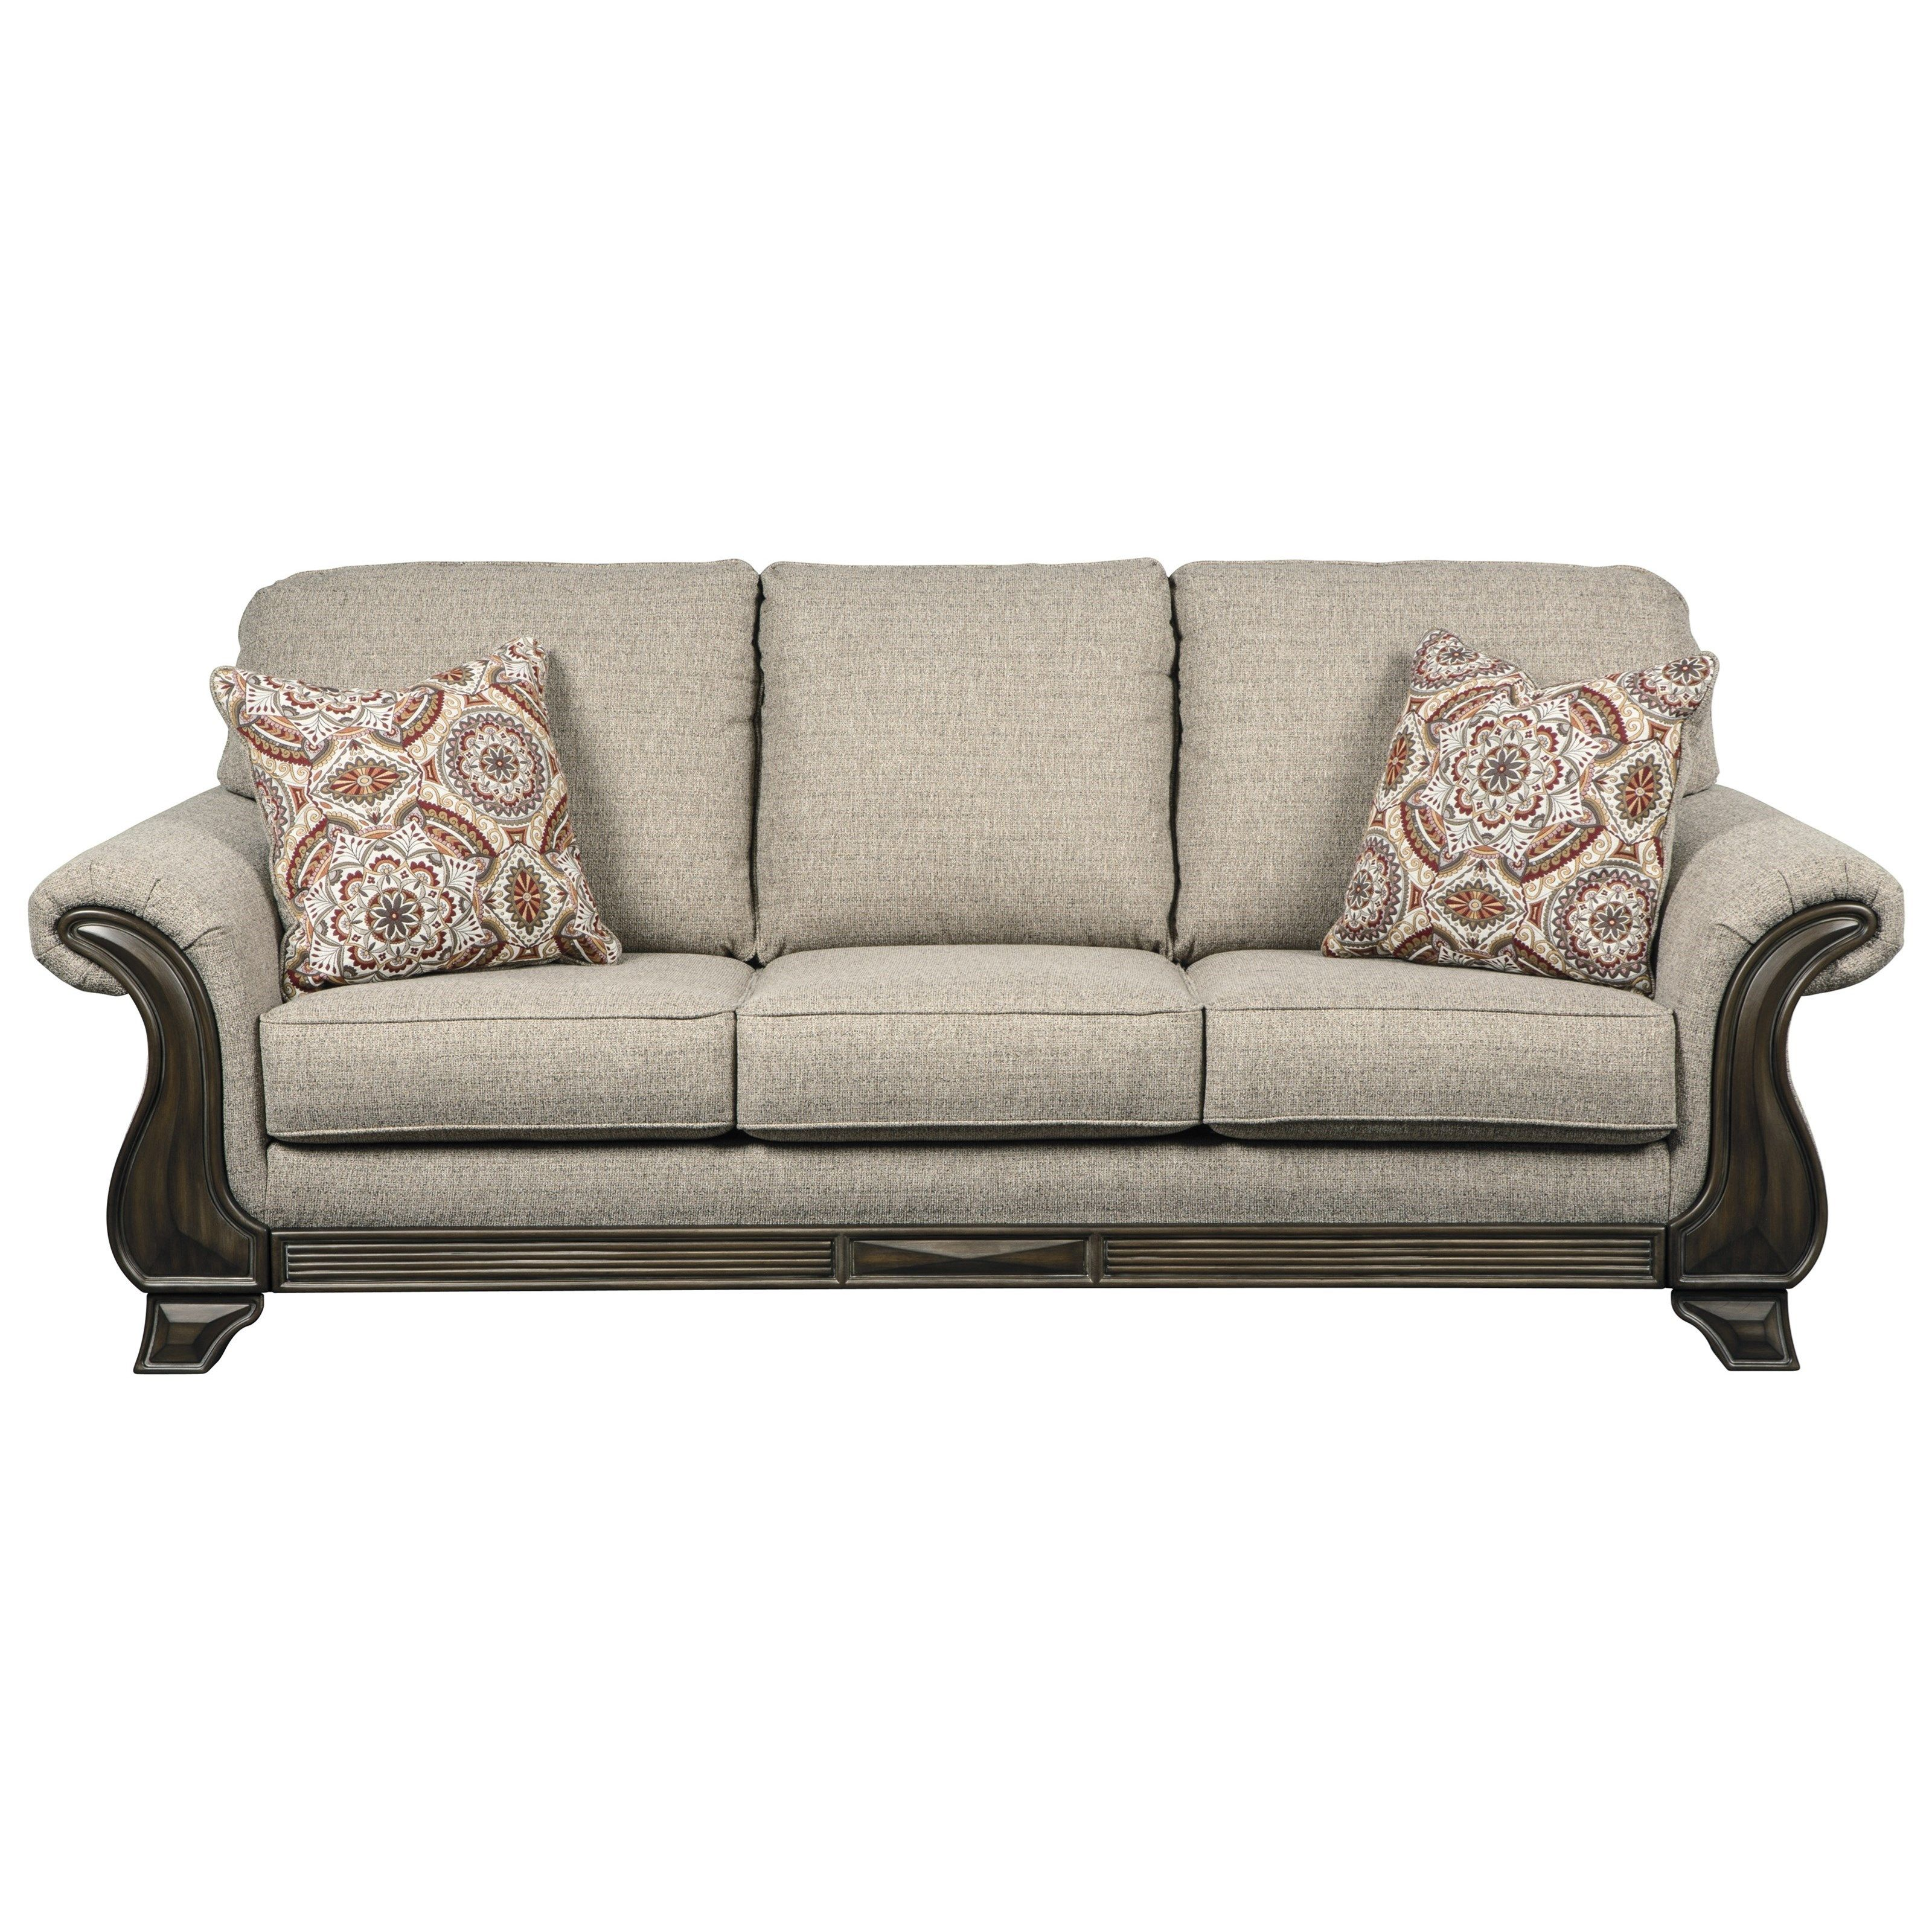 Best Claremorris Sofa With Traditional Style By Benchcraft In 400 x 300